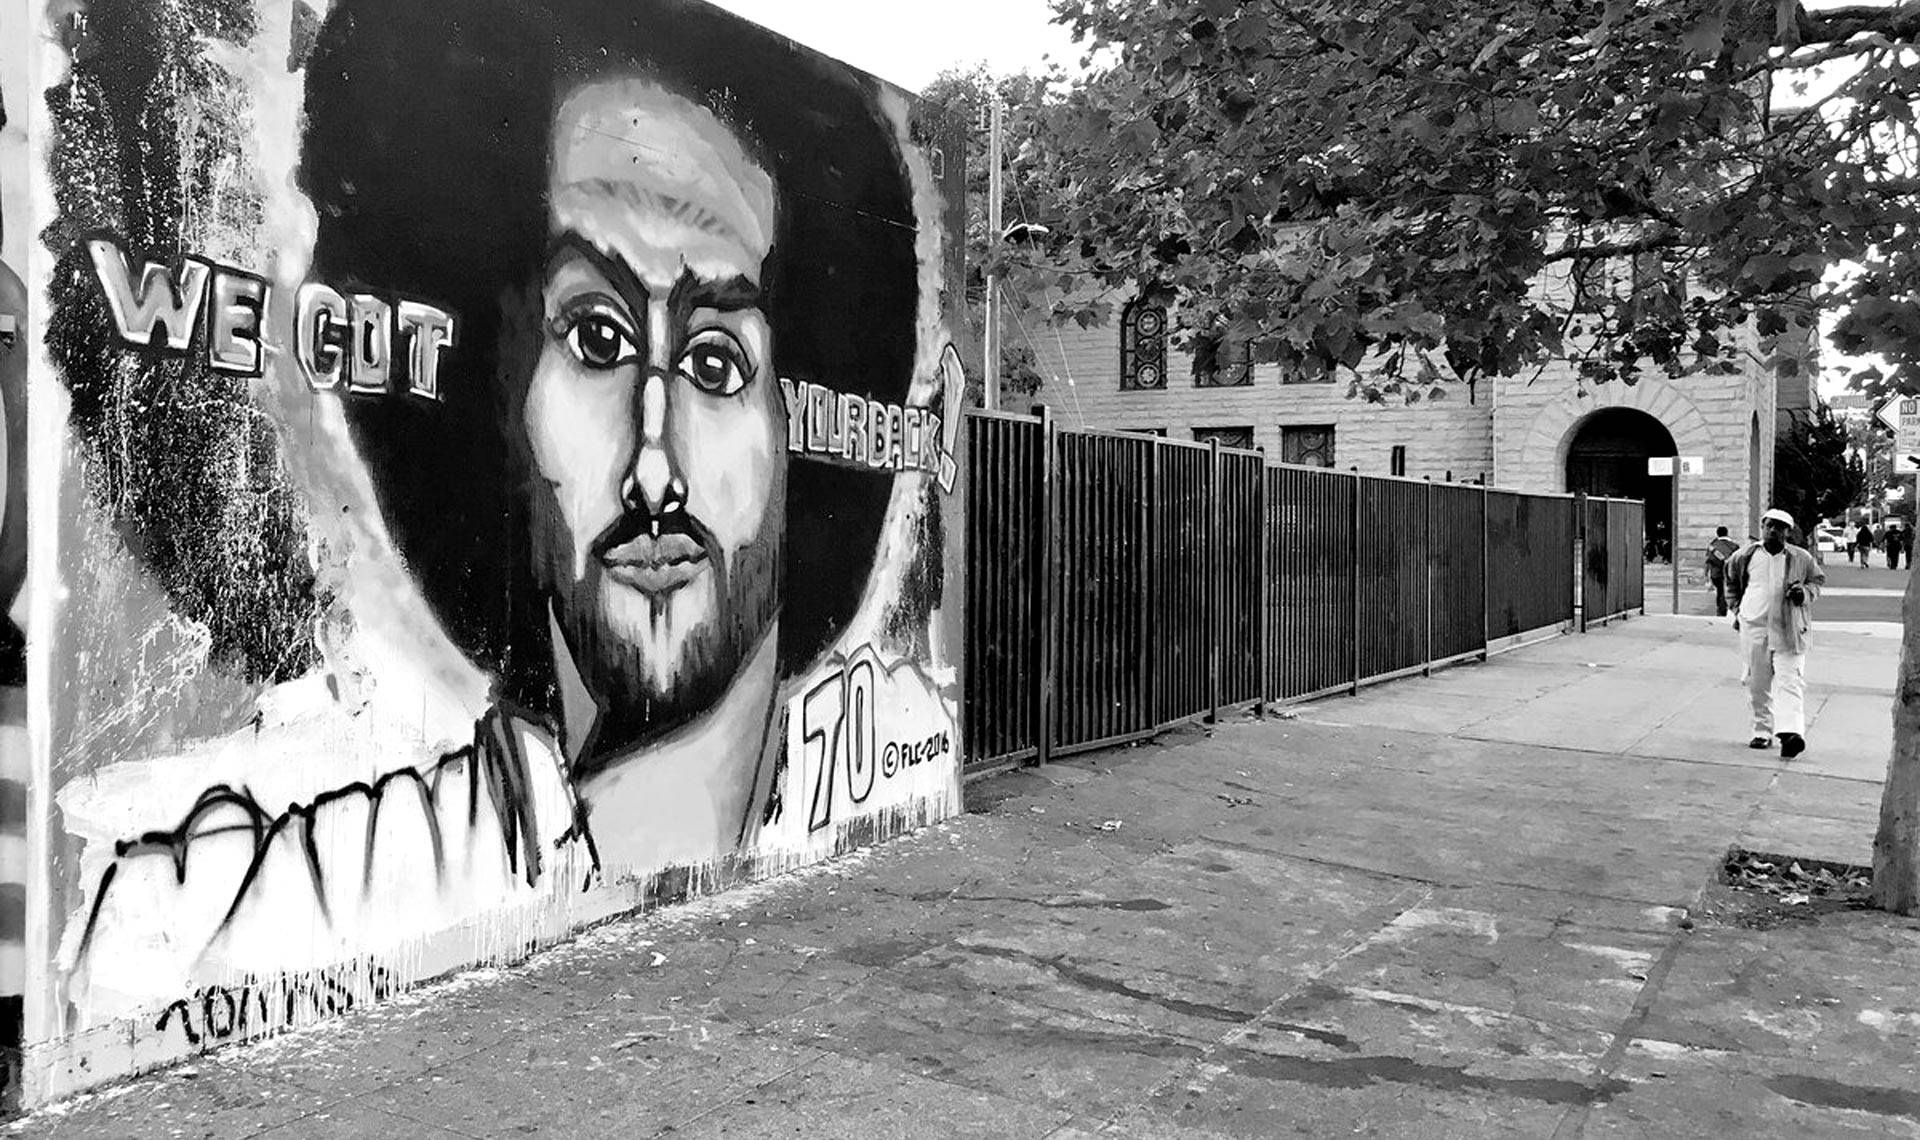 A mural of Colin Kaepernick on Telegraph Ave. in Oakland, circa 2016. Pendarvis Harshaw